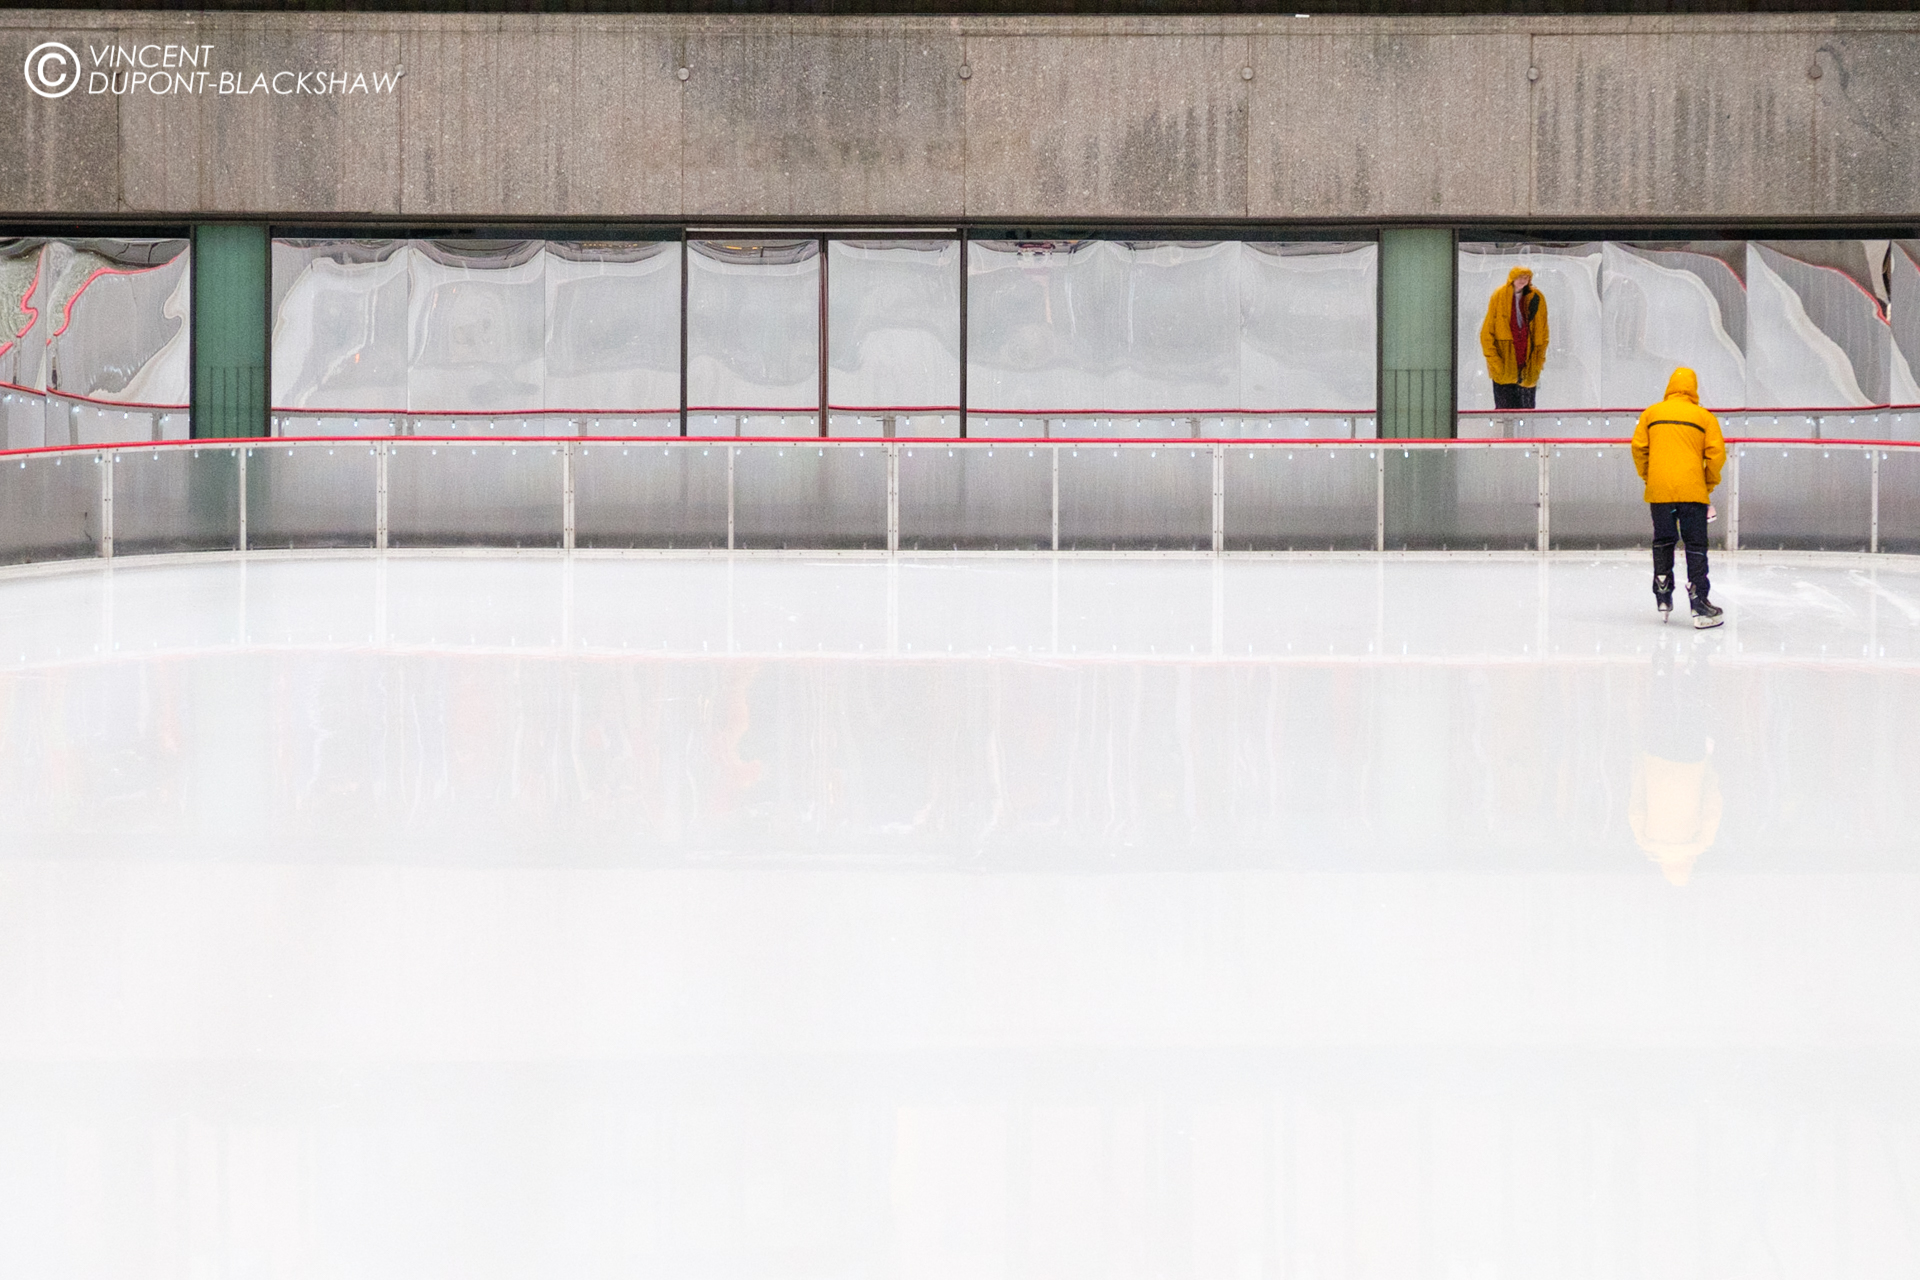 Frozen /// A man skates alone on the ice rink at Rockefeller Center (New York)